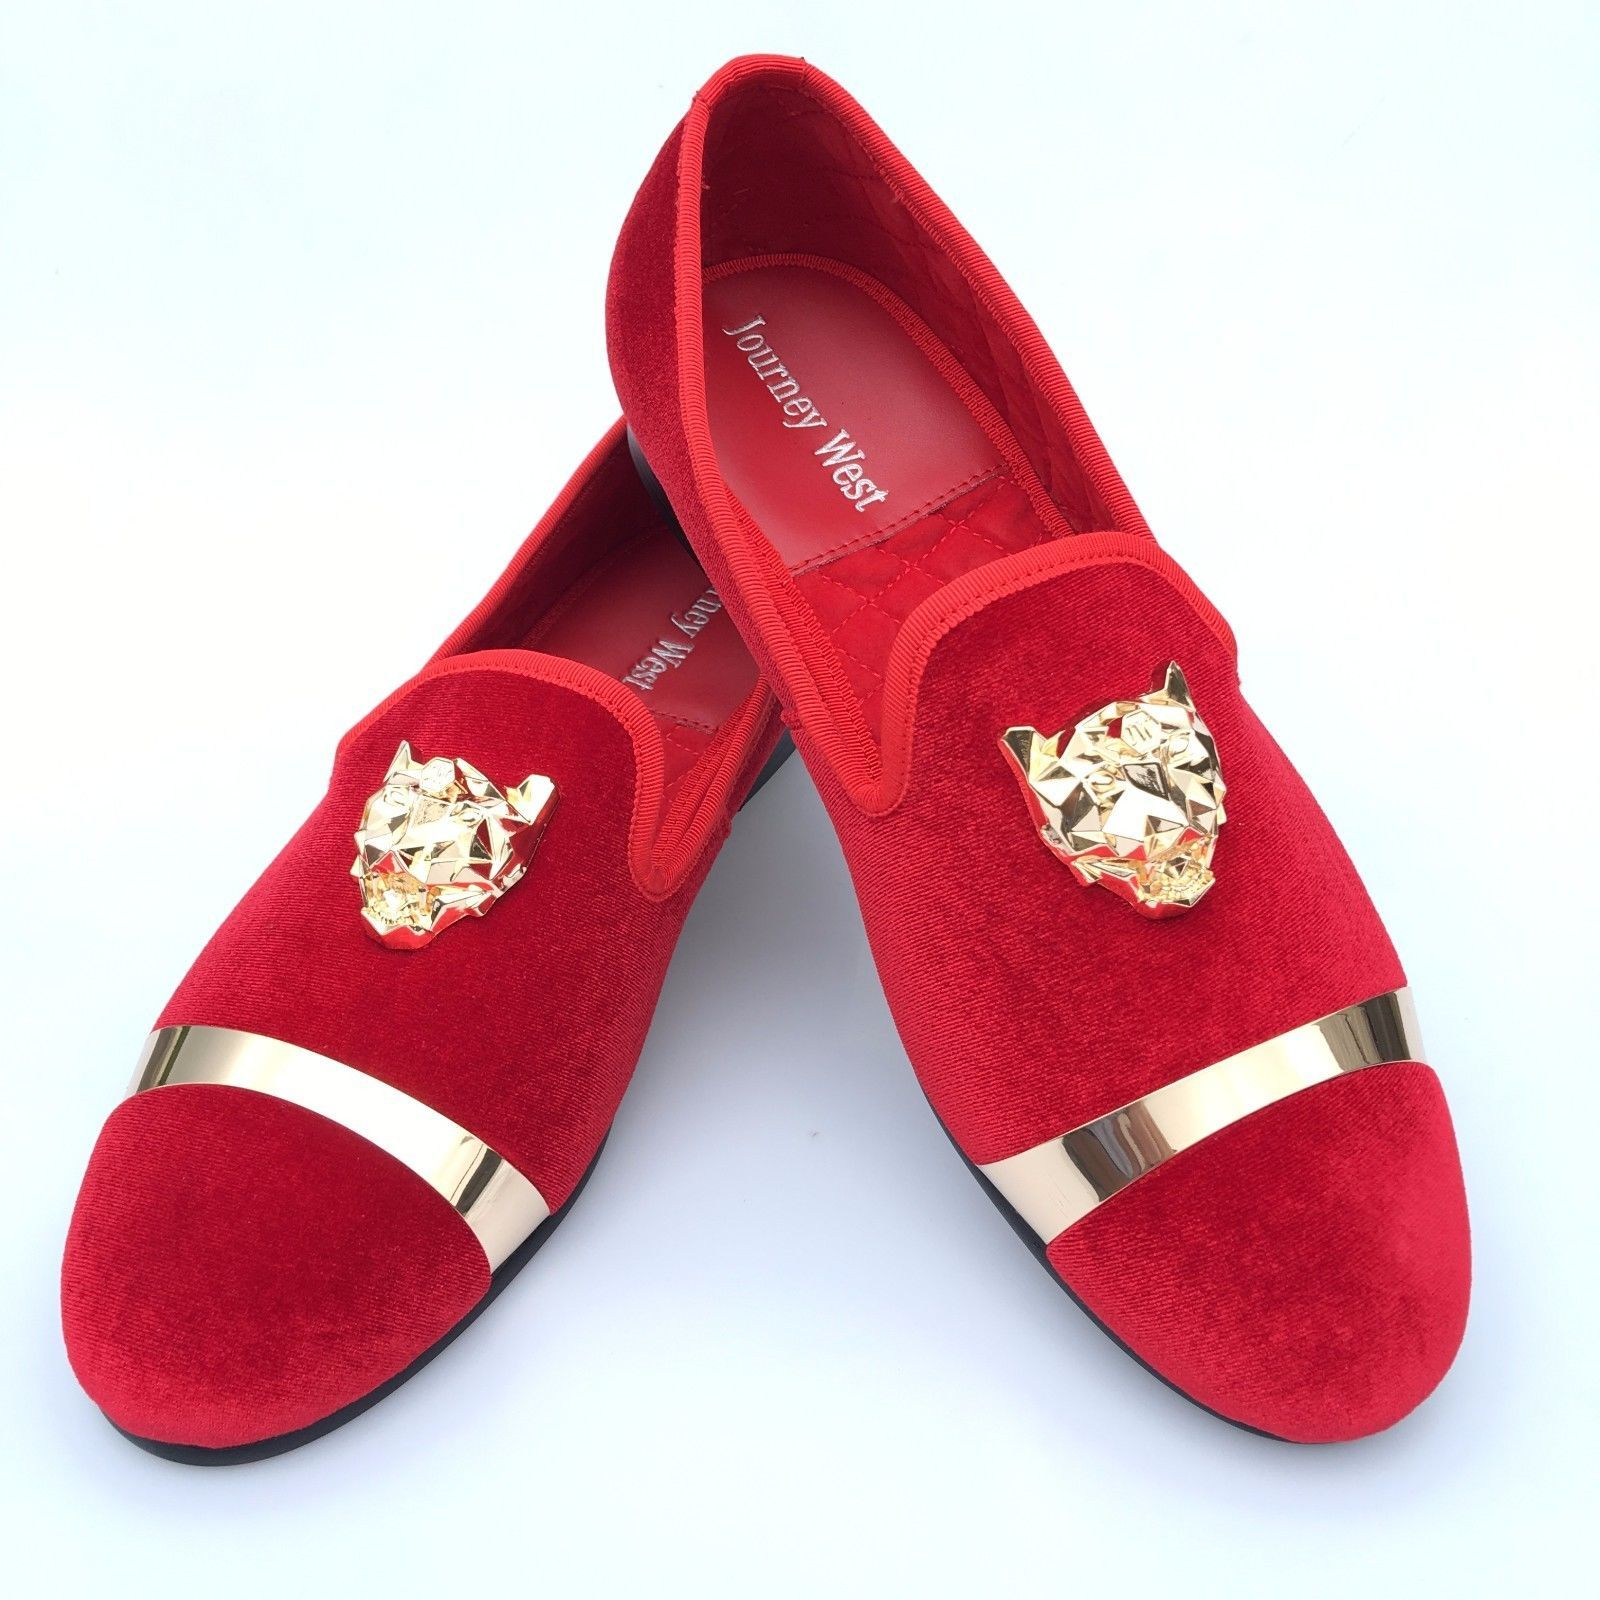 980bb87035b76 Nice Handmade Red Velvet Loafers Men Wedding Prom Shoes with Buckle Slippers  Flat New 2017-